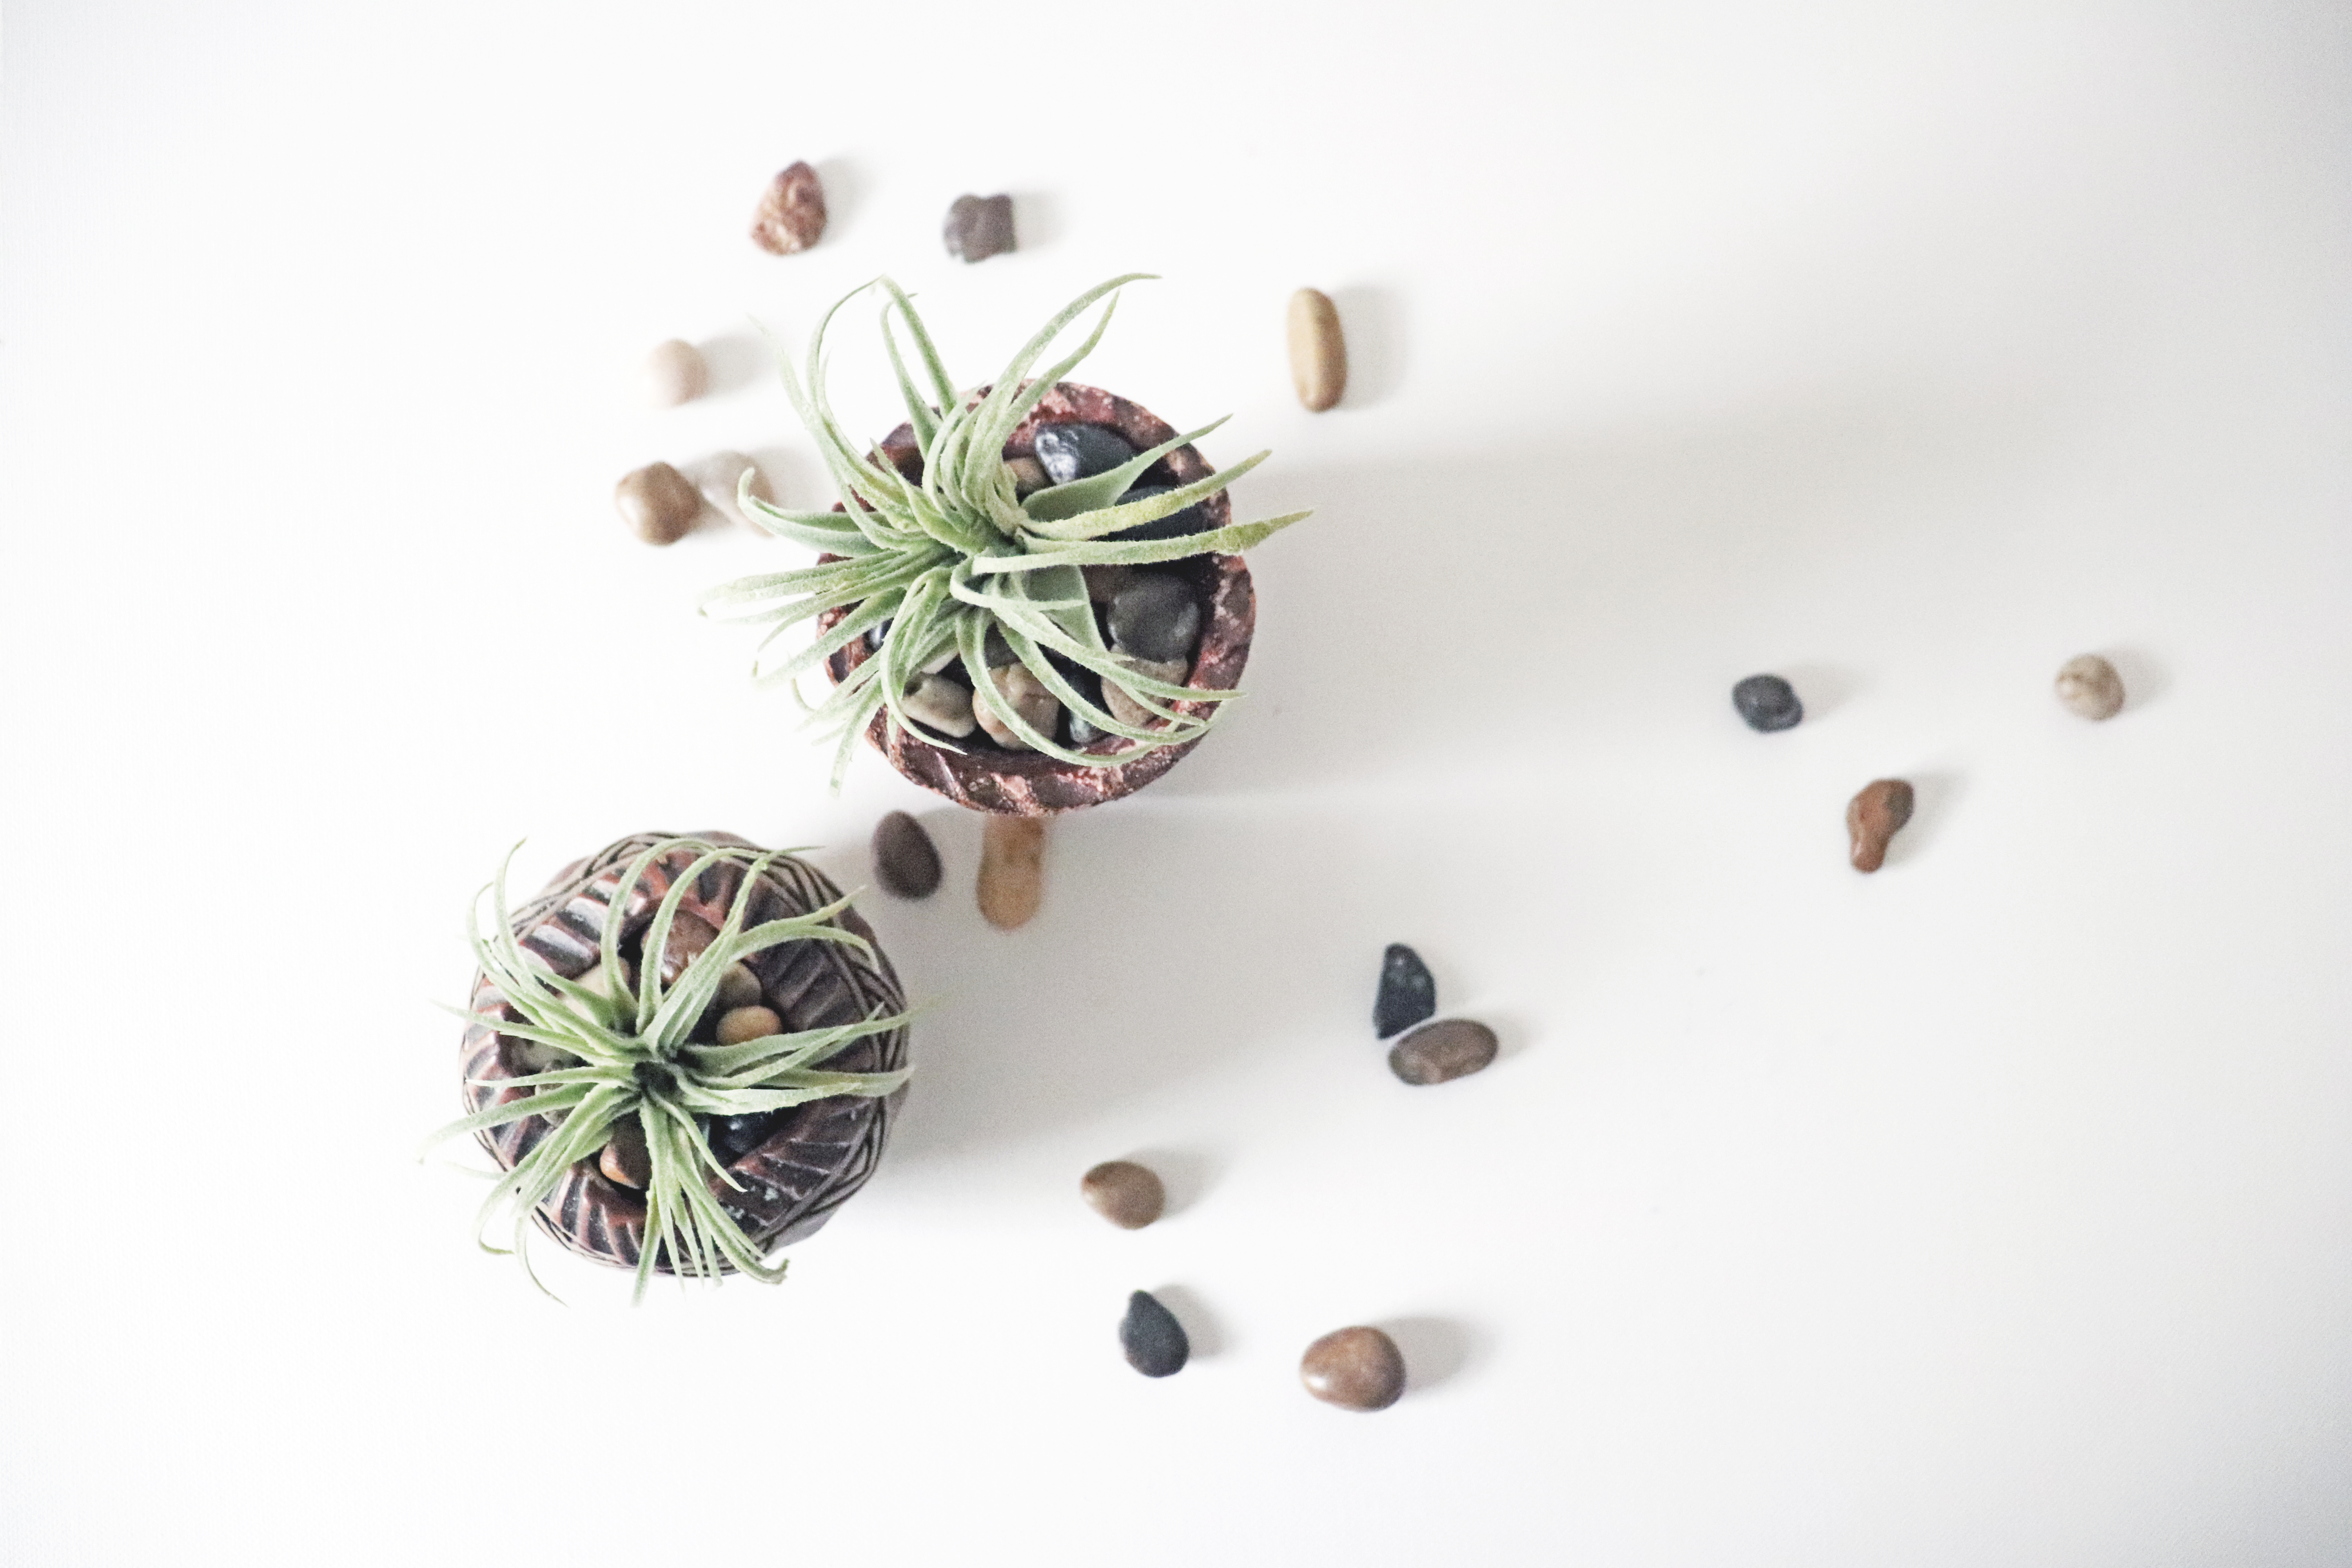 Air plant in a pot with natural rocks on a white background